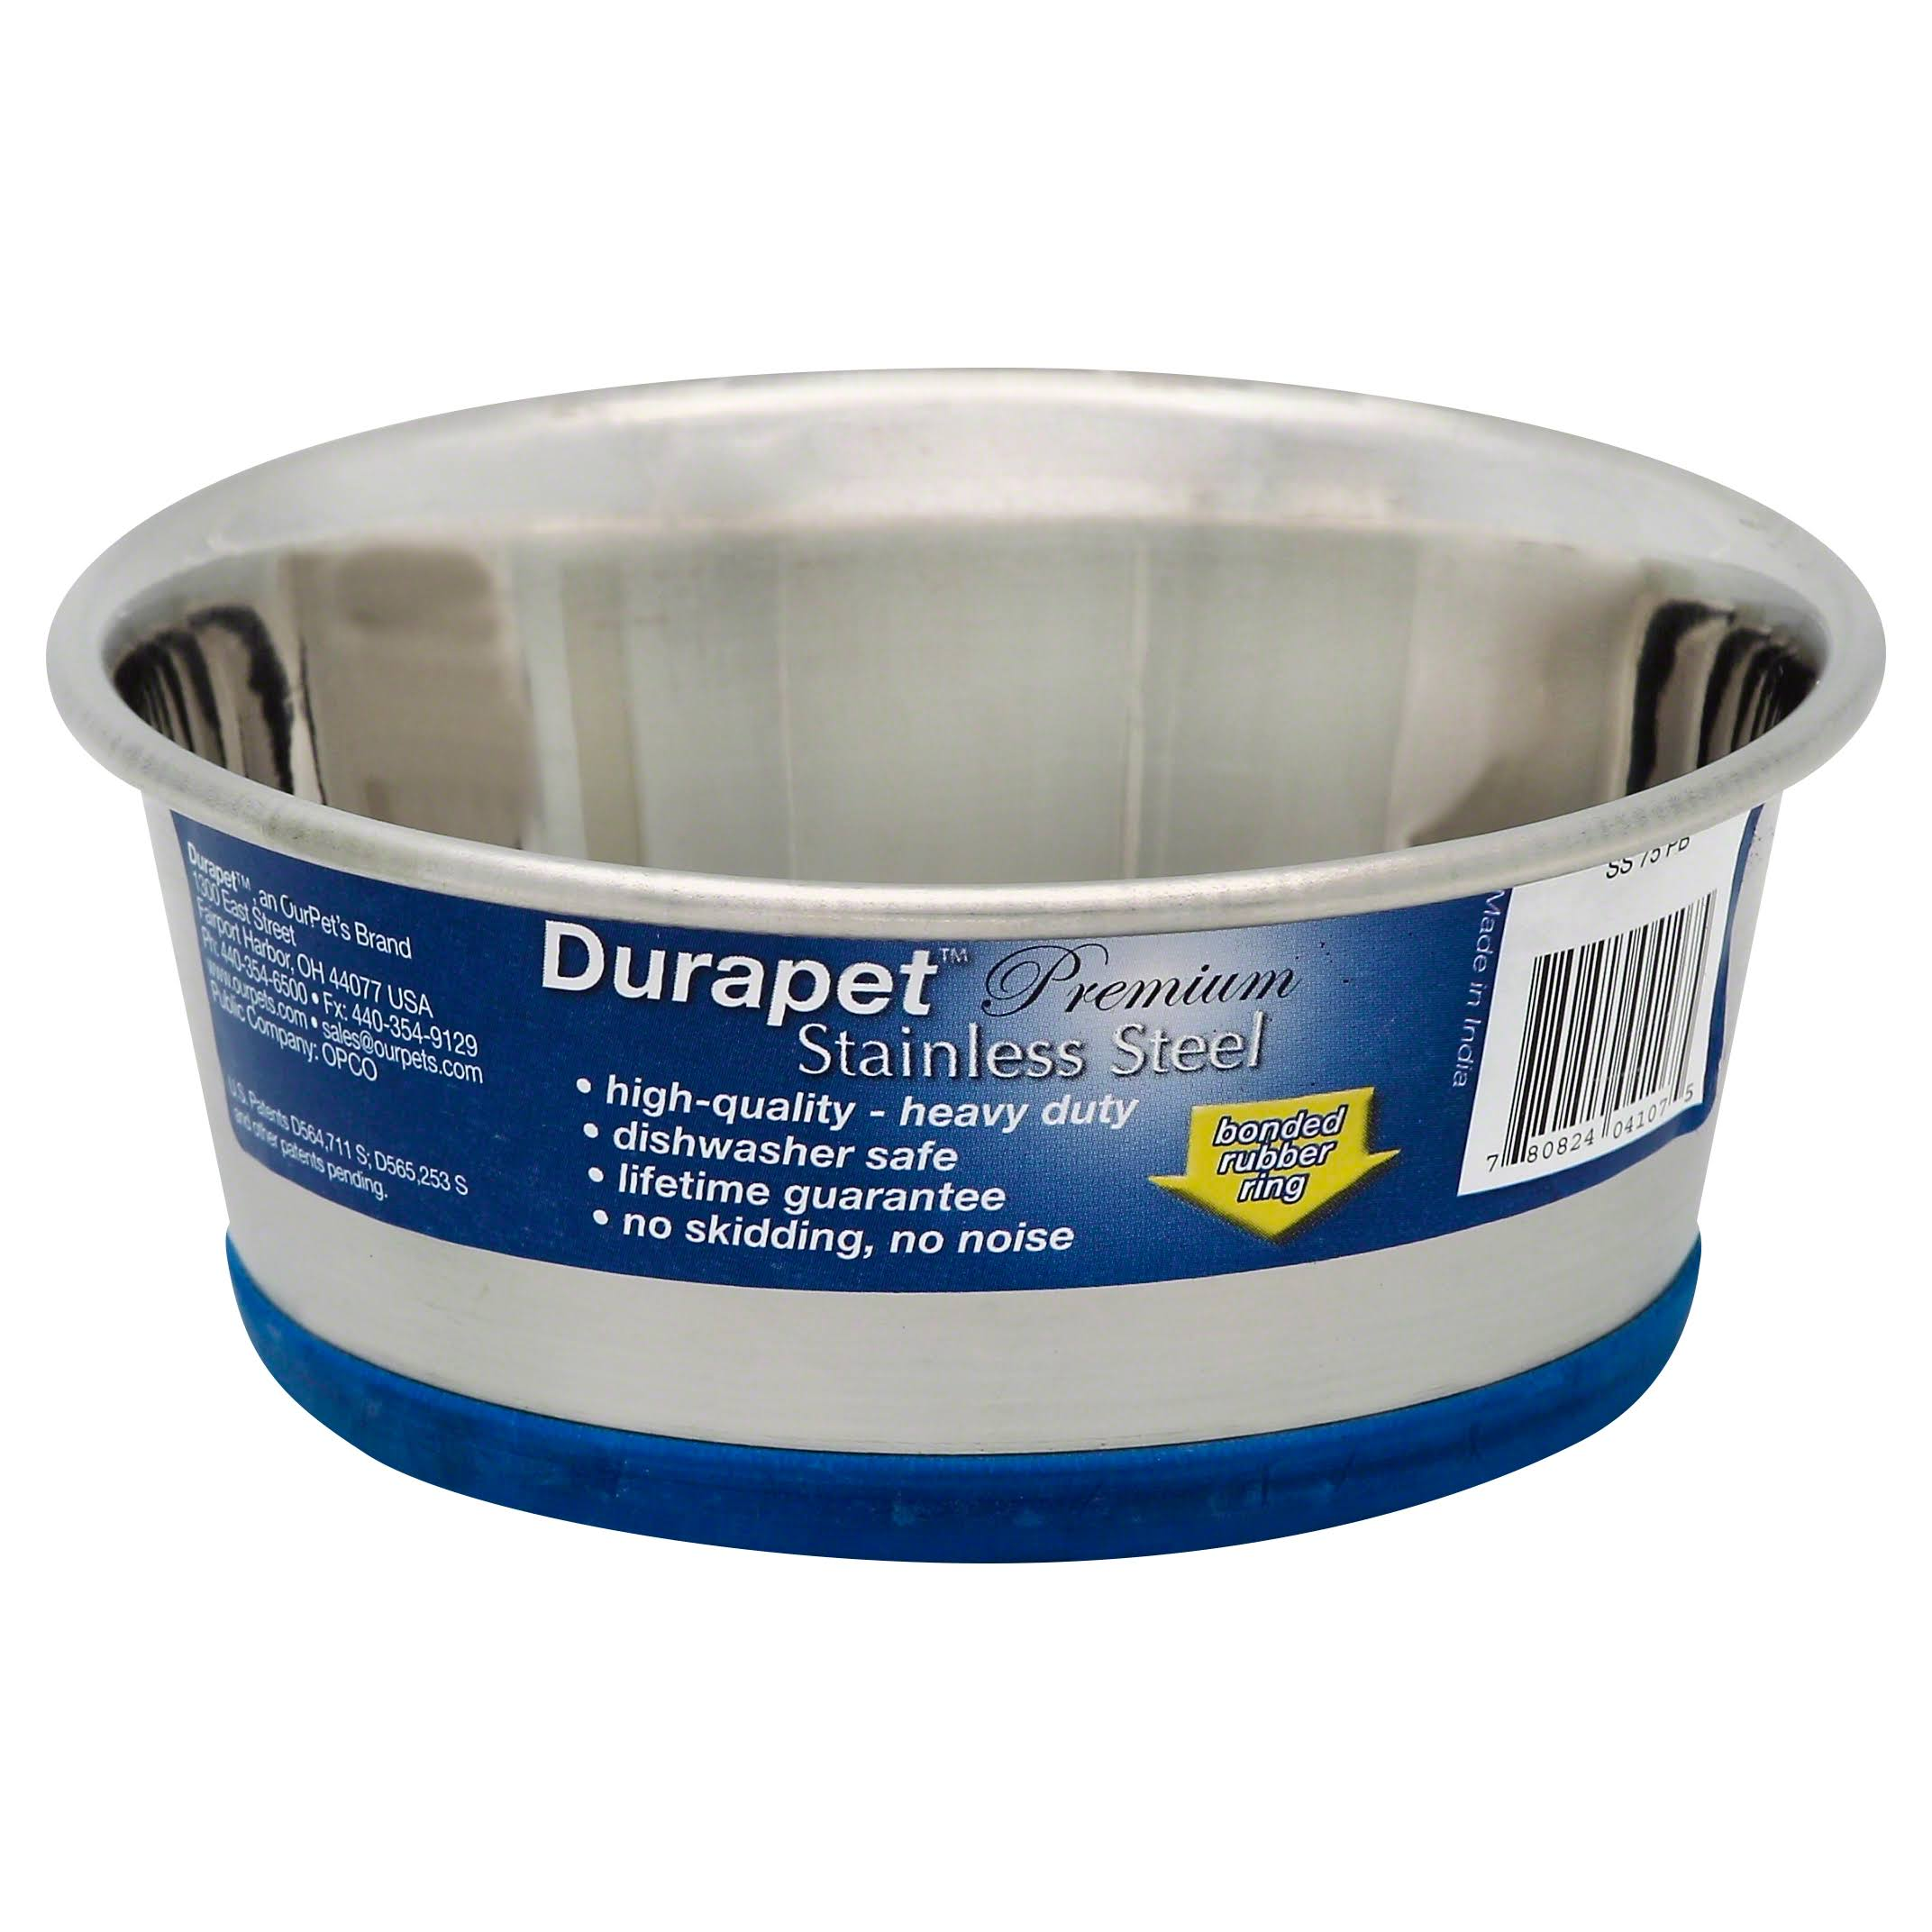 Durapet Bowl - Stainless Steel